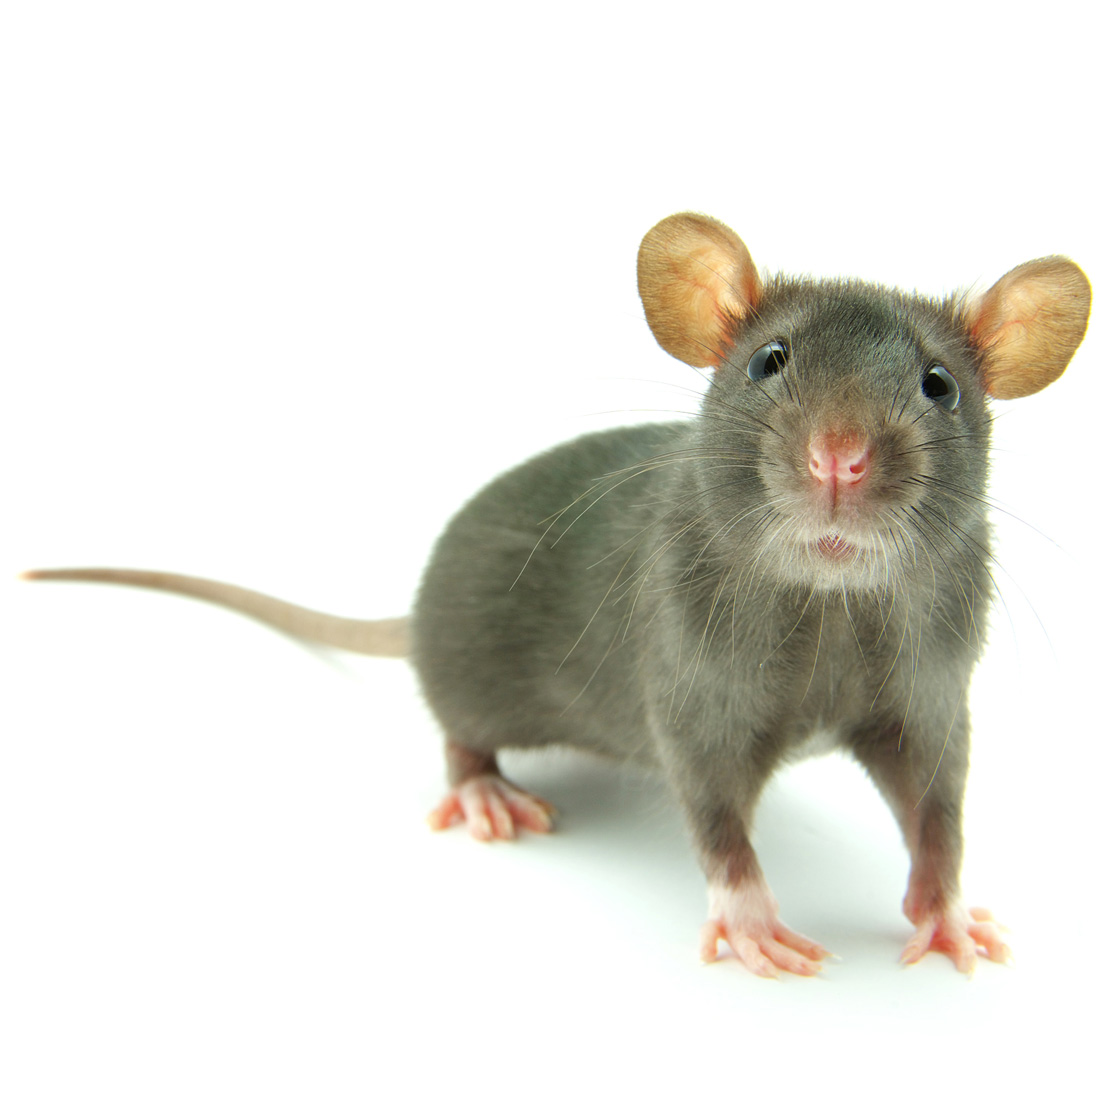 infestation-of-mice-and-rats-1100.jpg